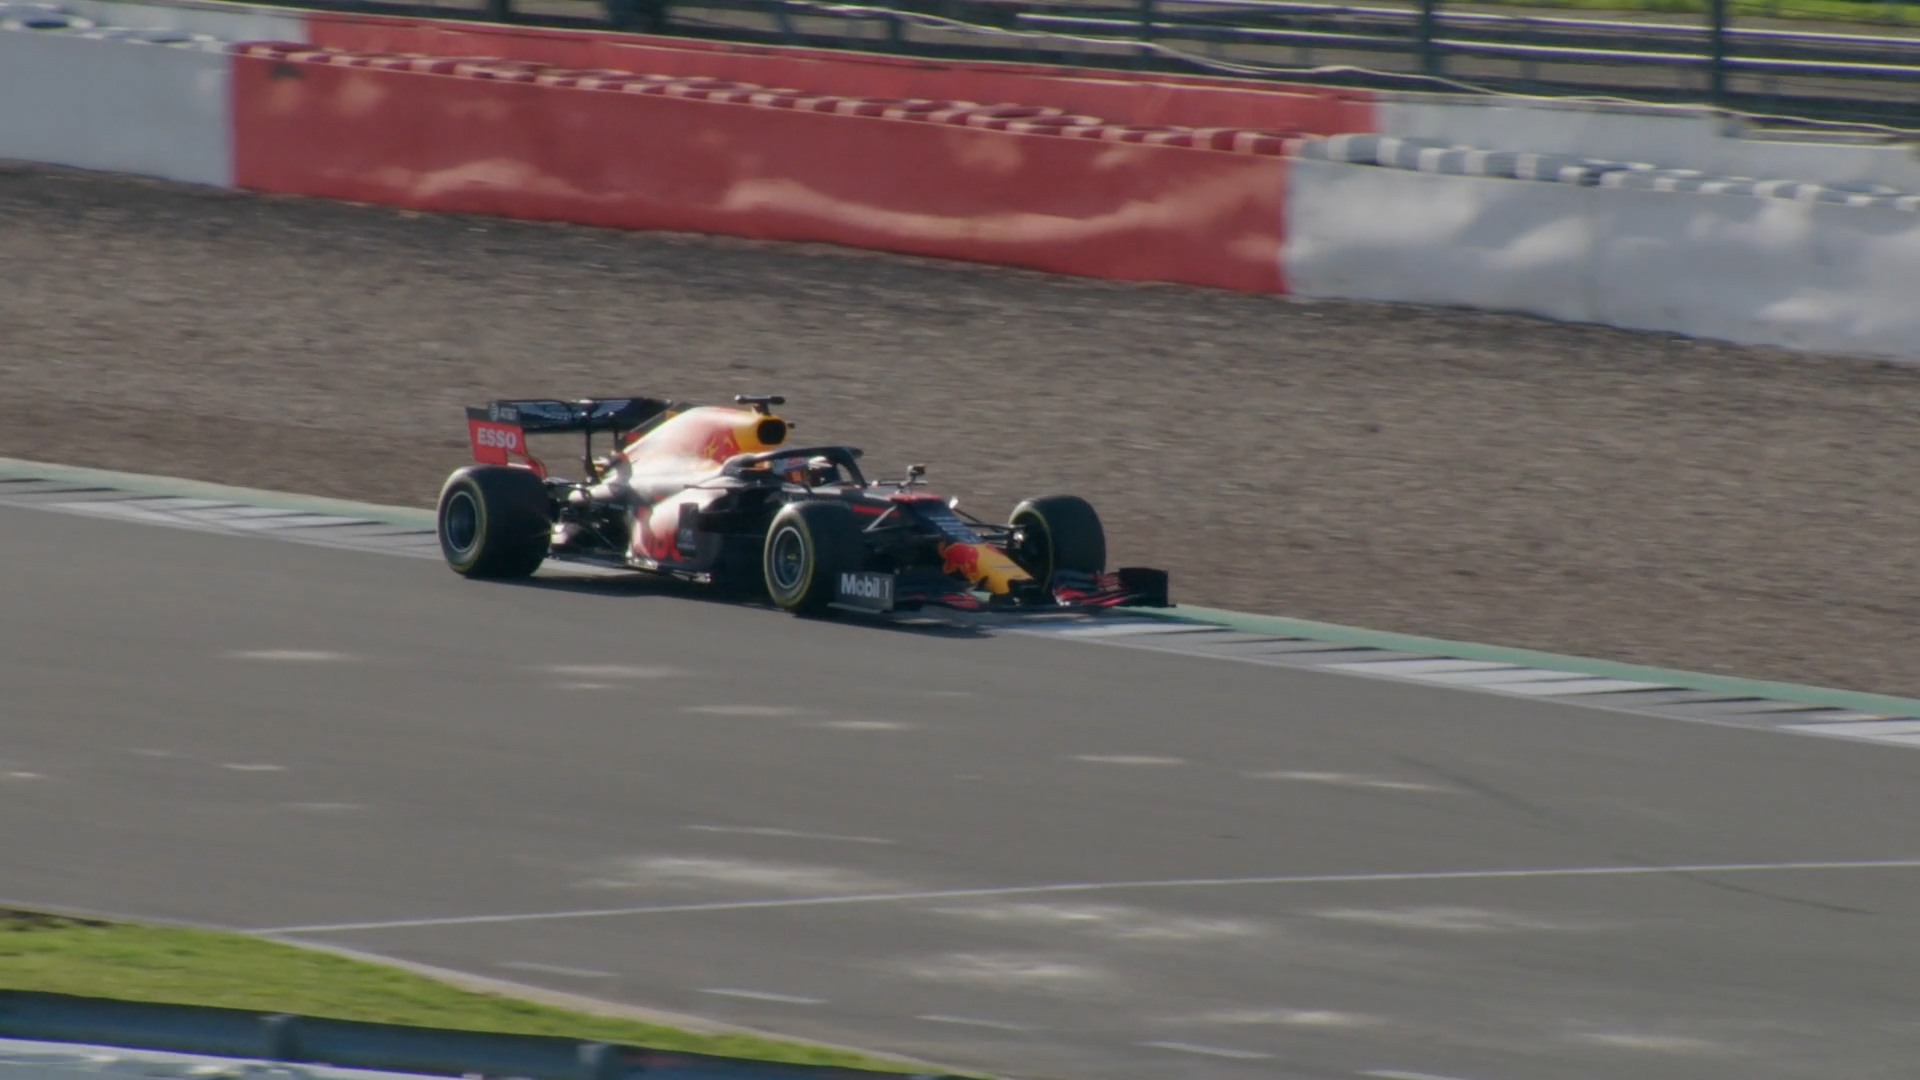 First 2020 car on track: Red Bull's RB16 in action